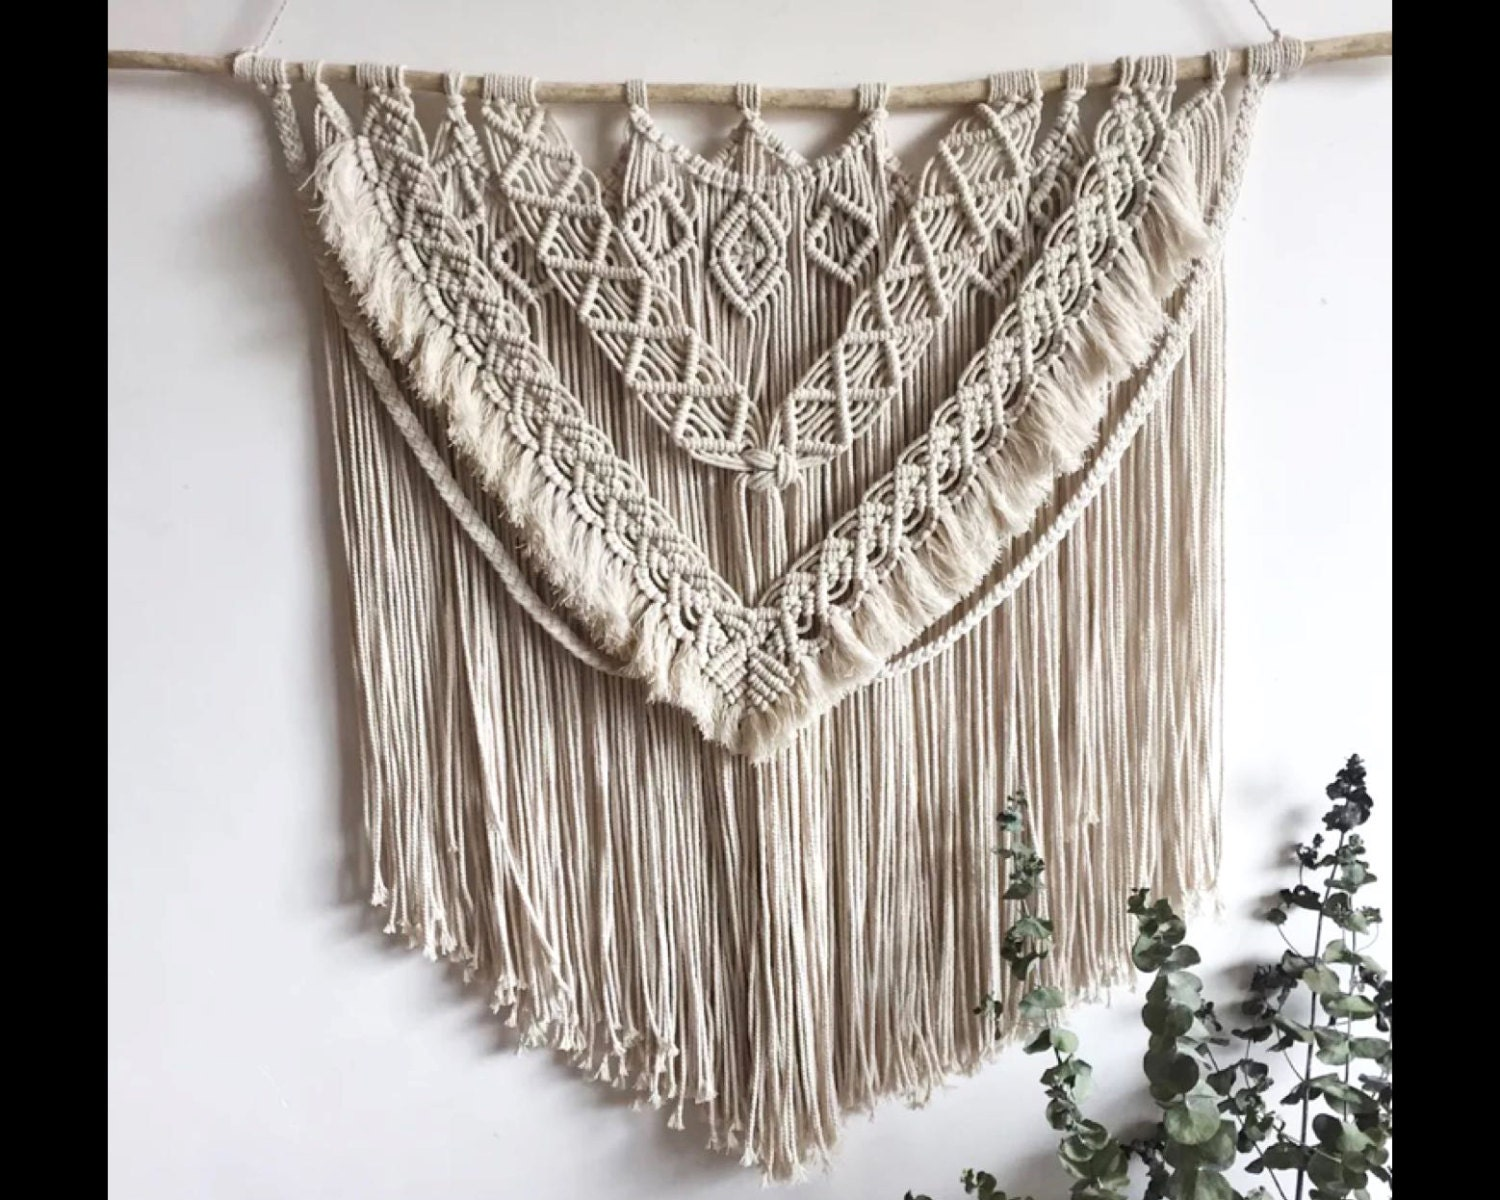 Woven wall hanging large macrame wall hanging by for Wall hanging